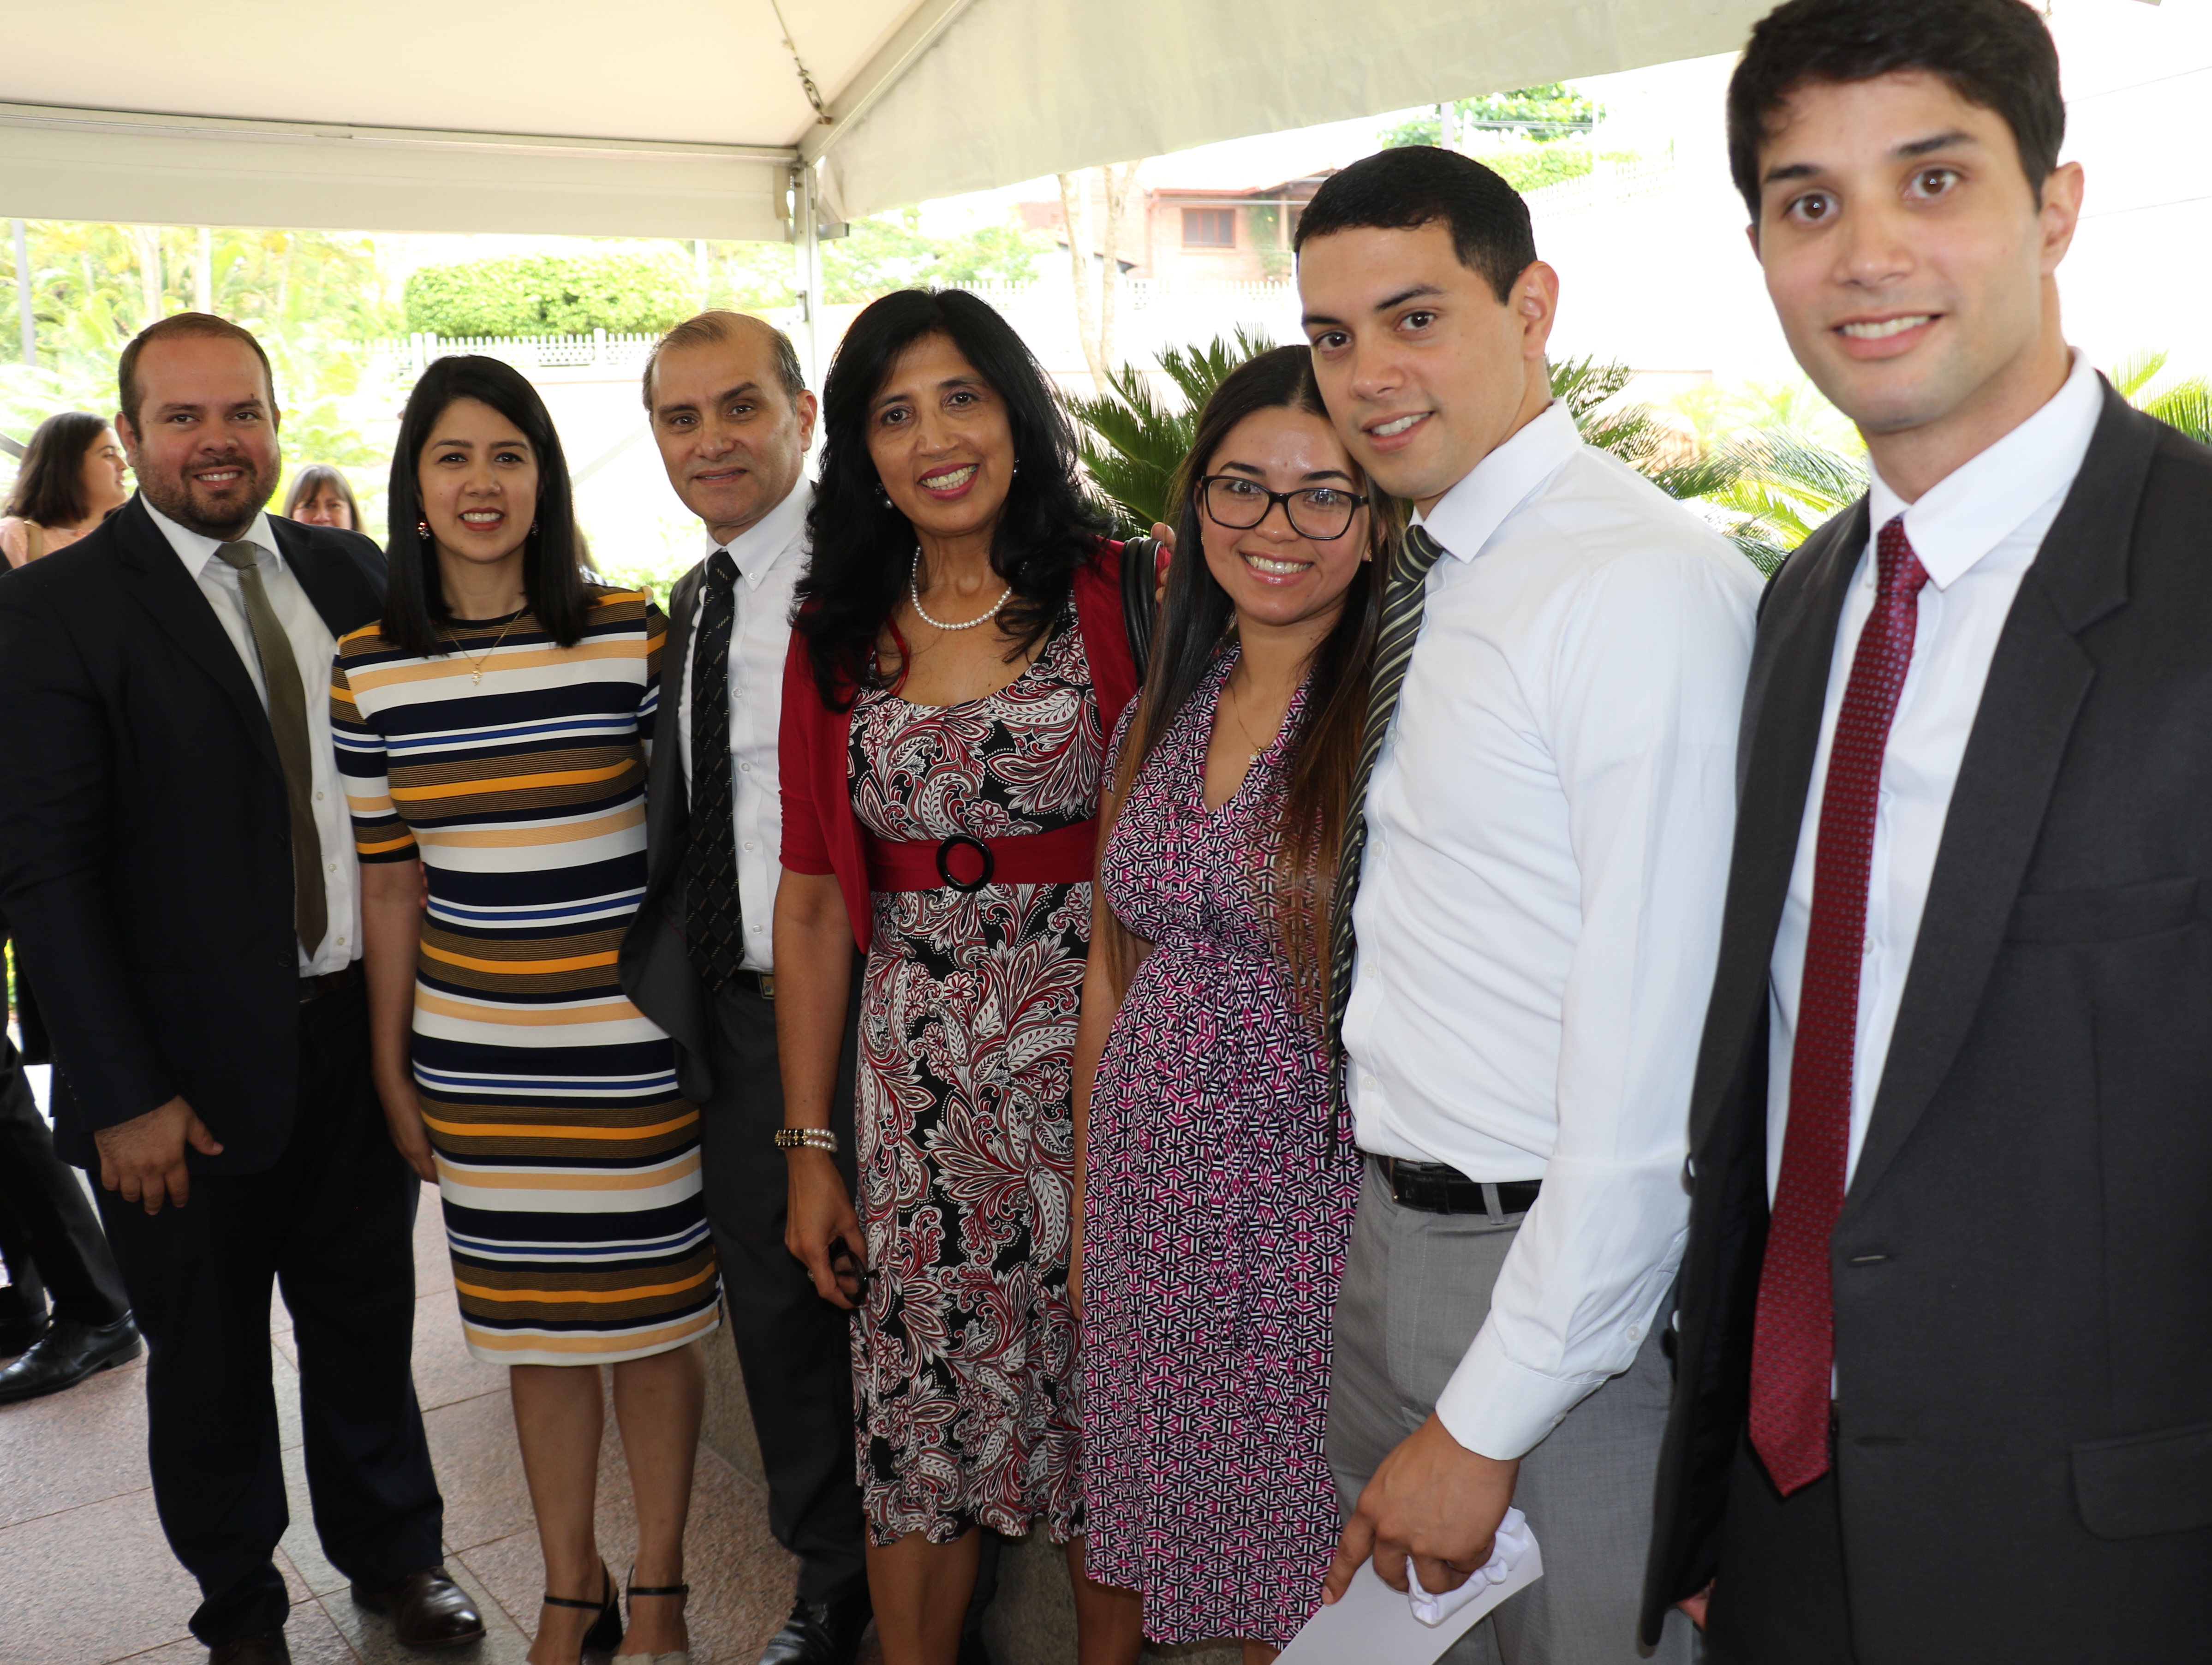 The Maluff-Cañete family are emblematic of the multi-generational Latter-day Saint families found in Paraguay.